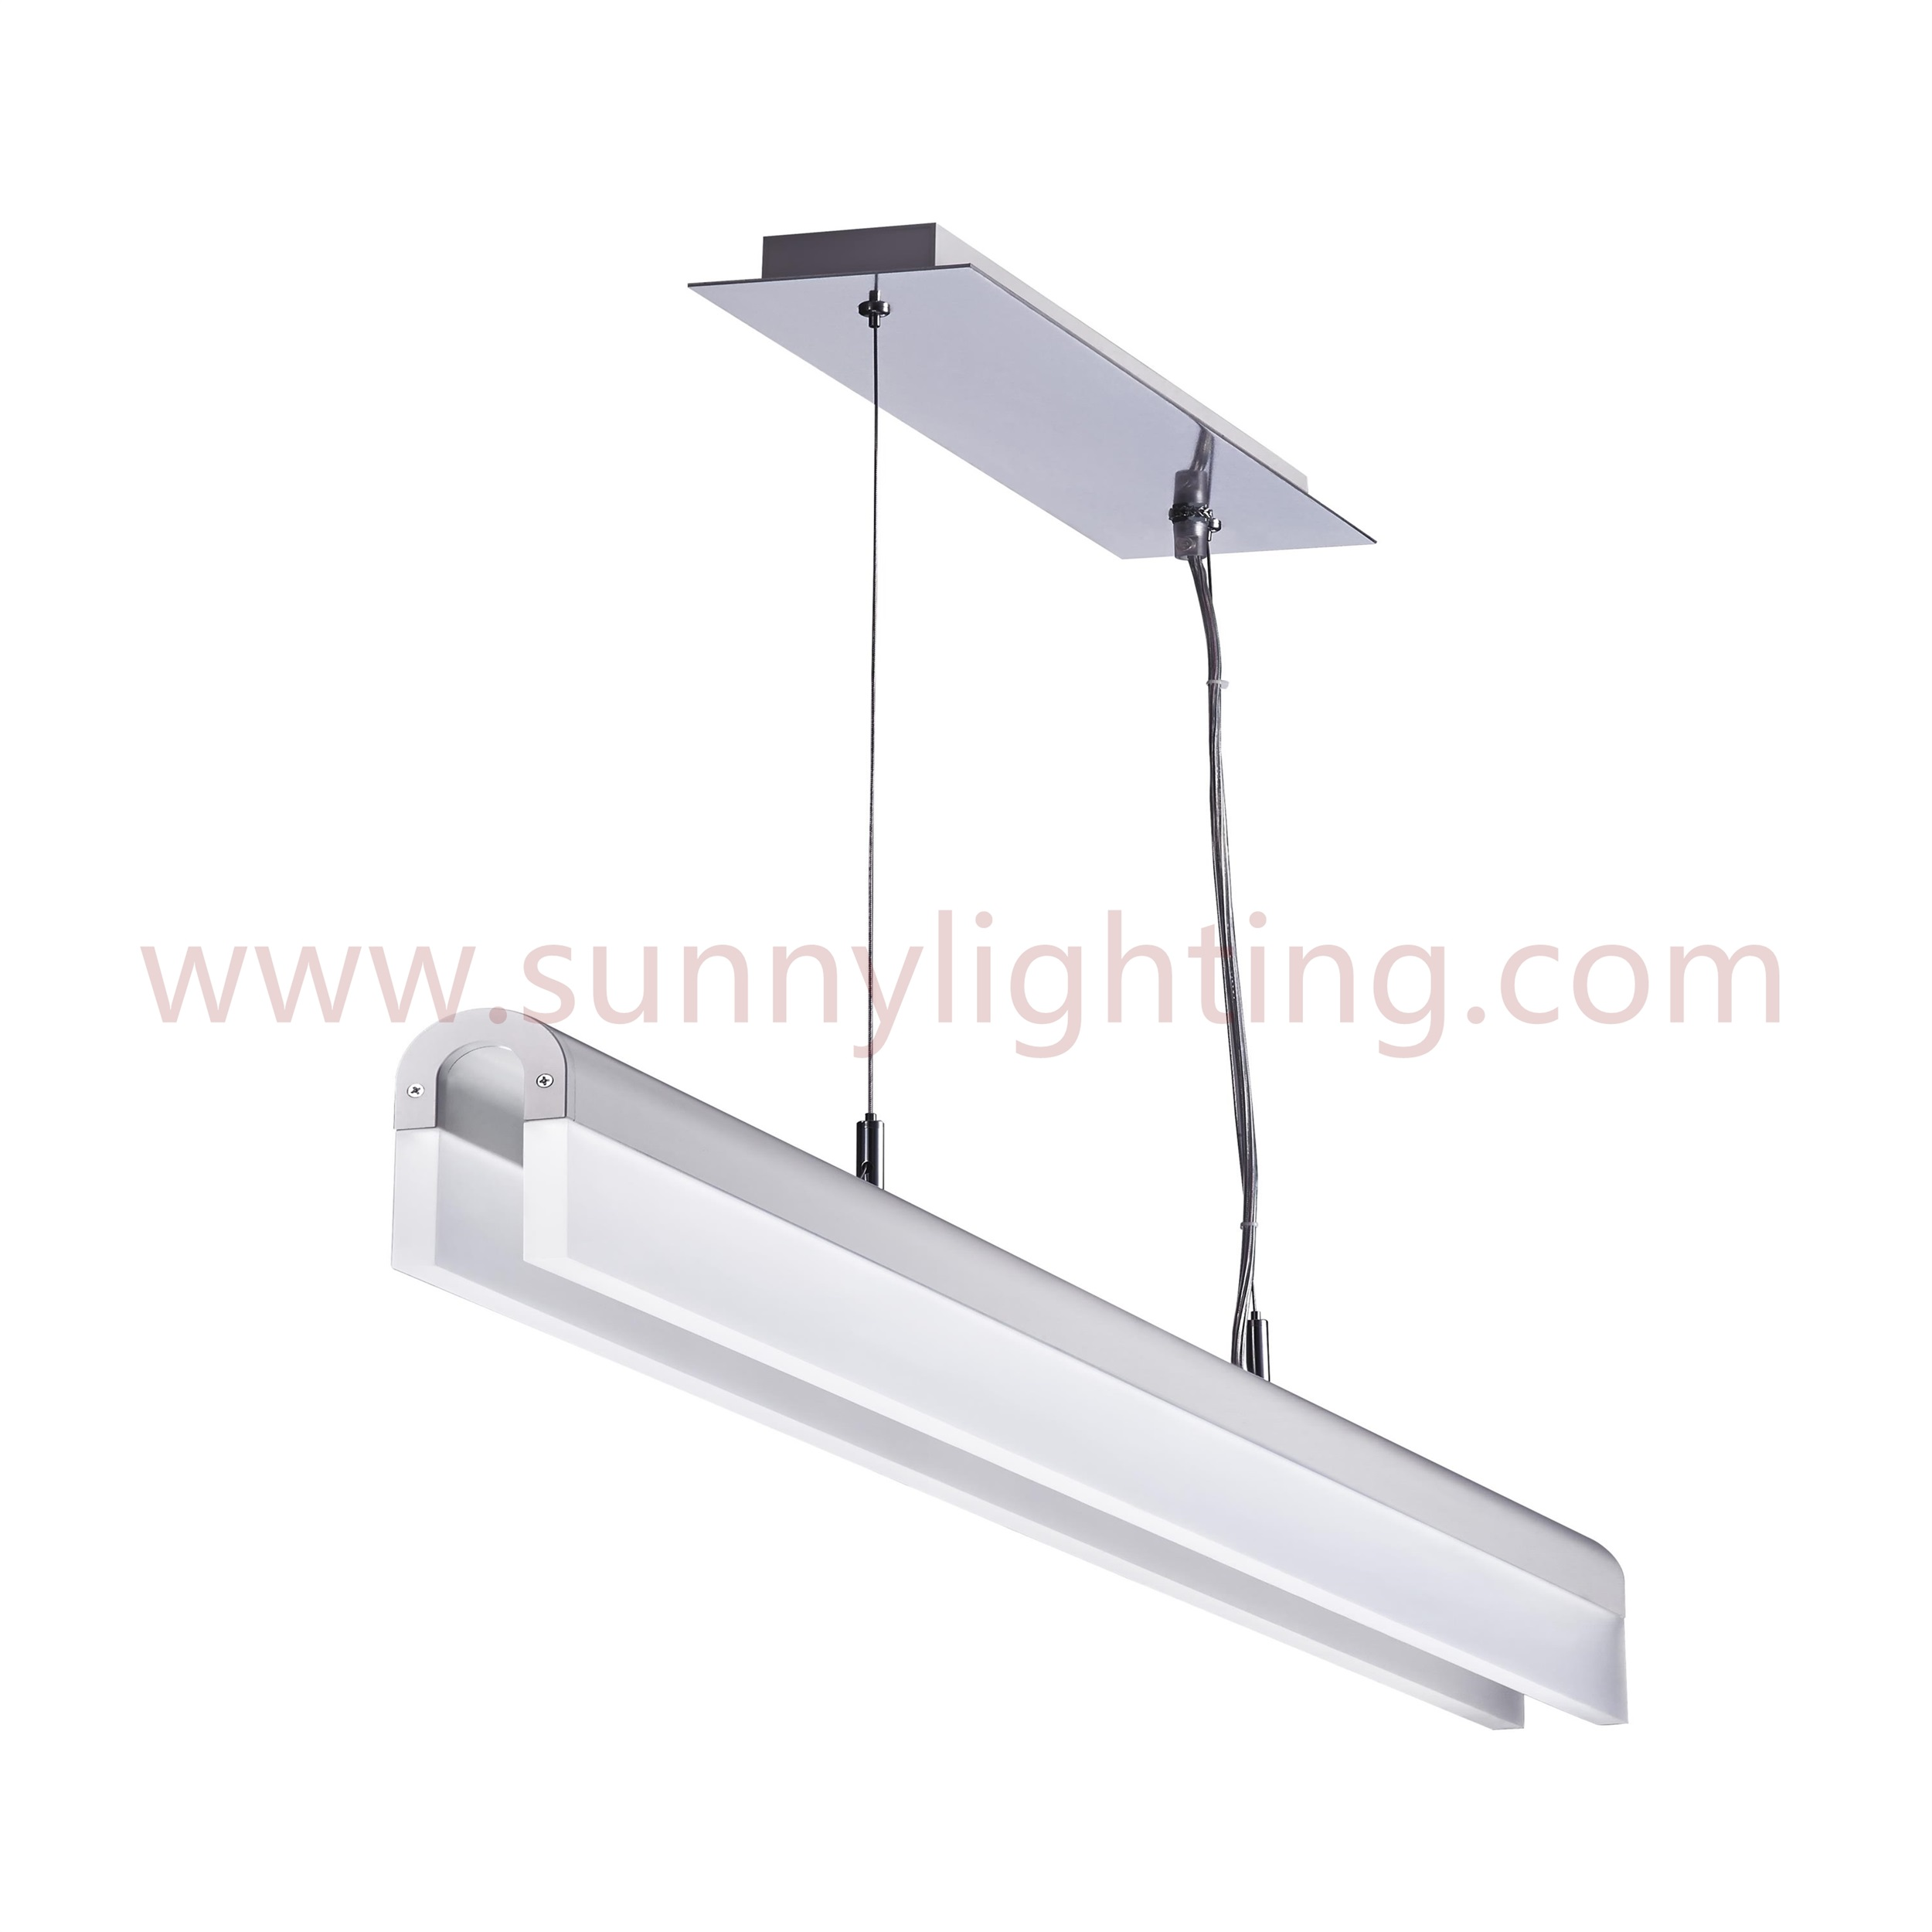 LED Linear Light 21.6/28.8W/36W LED-072